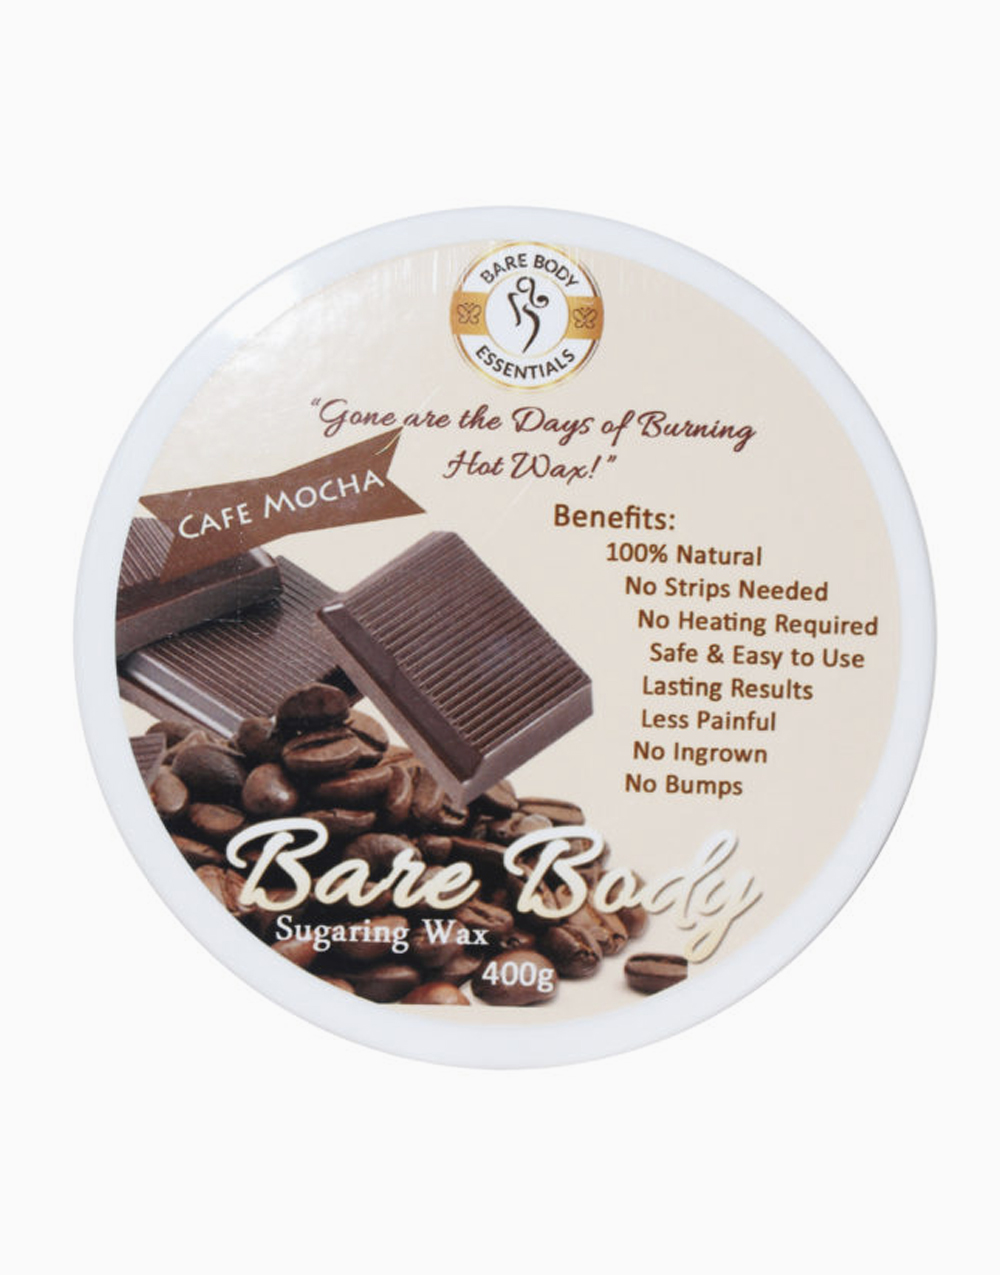 Bare Body Sugaring Wax (400g) by Bare Body Essentials | Cafe Mocha